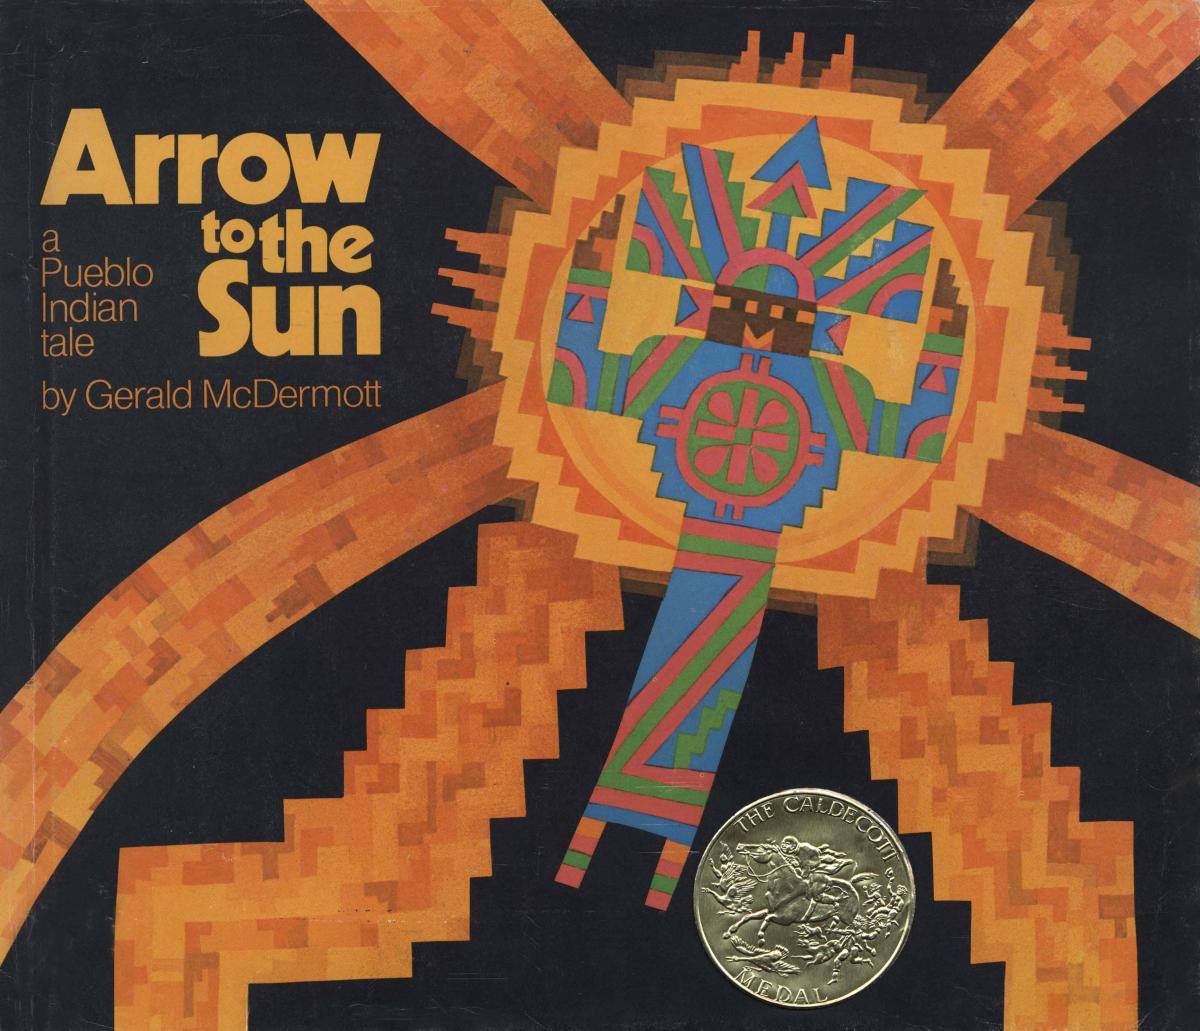 Arrow to the Sun: A Pueblo Indian Tale - book cover image